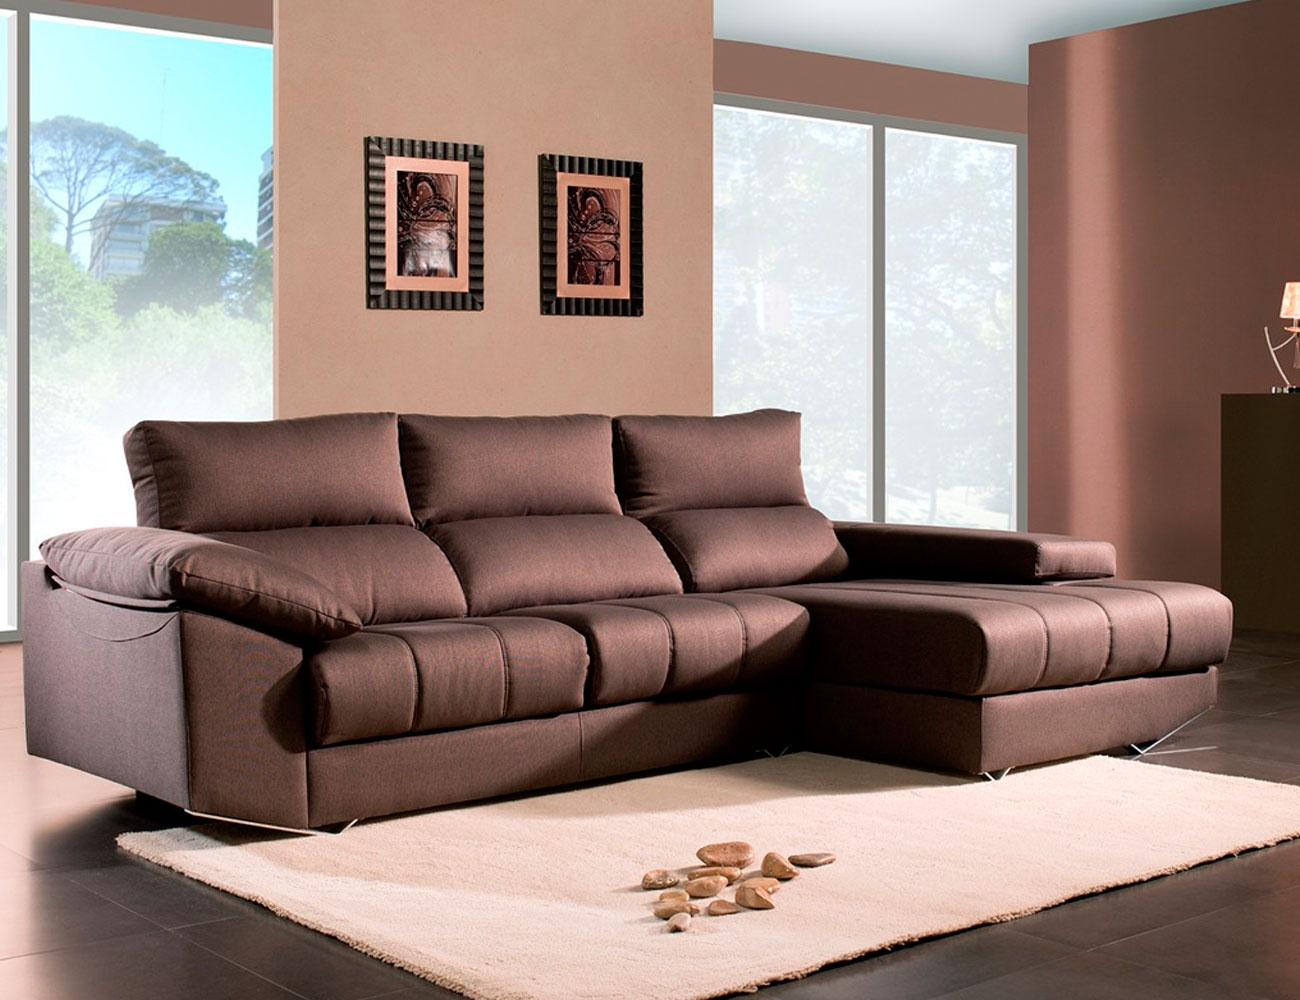 Sofa chaiselongue moderno brazo mecanico14